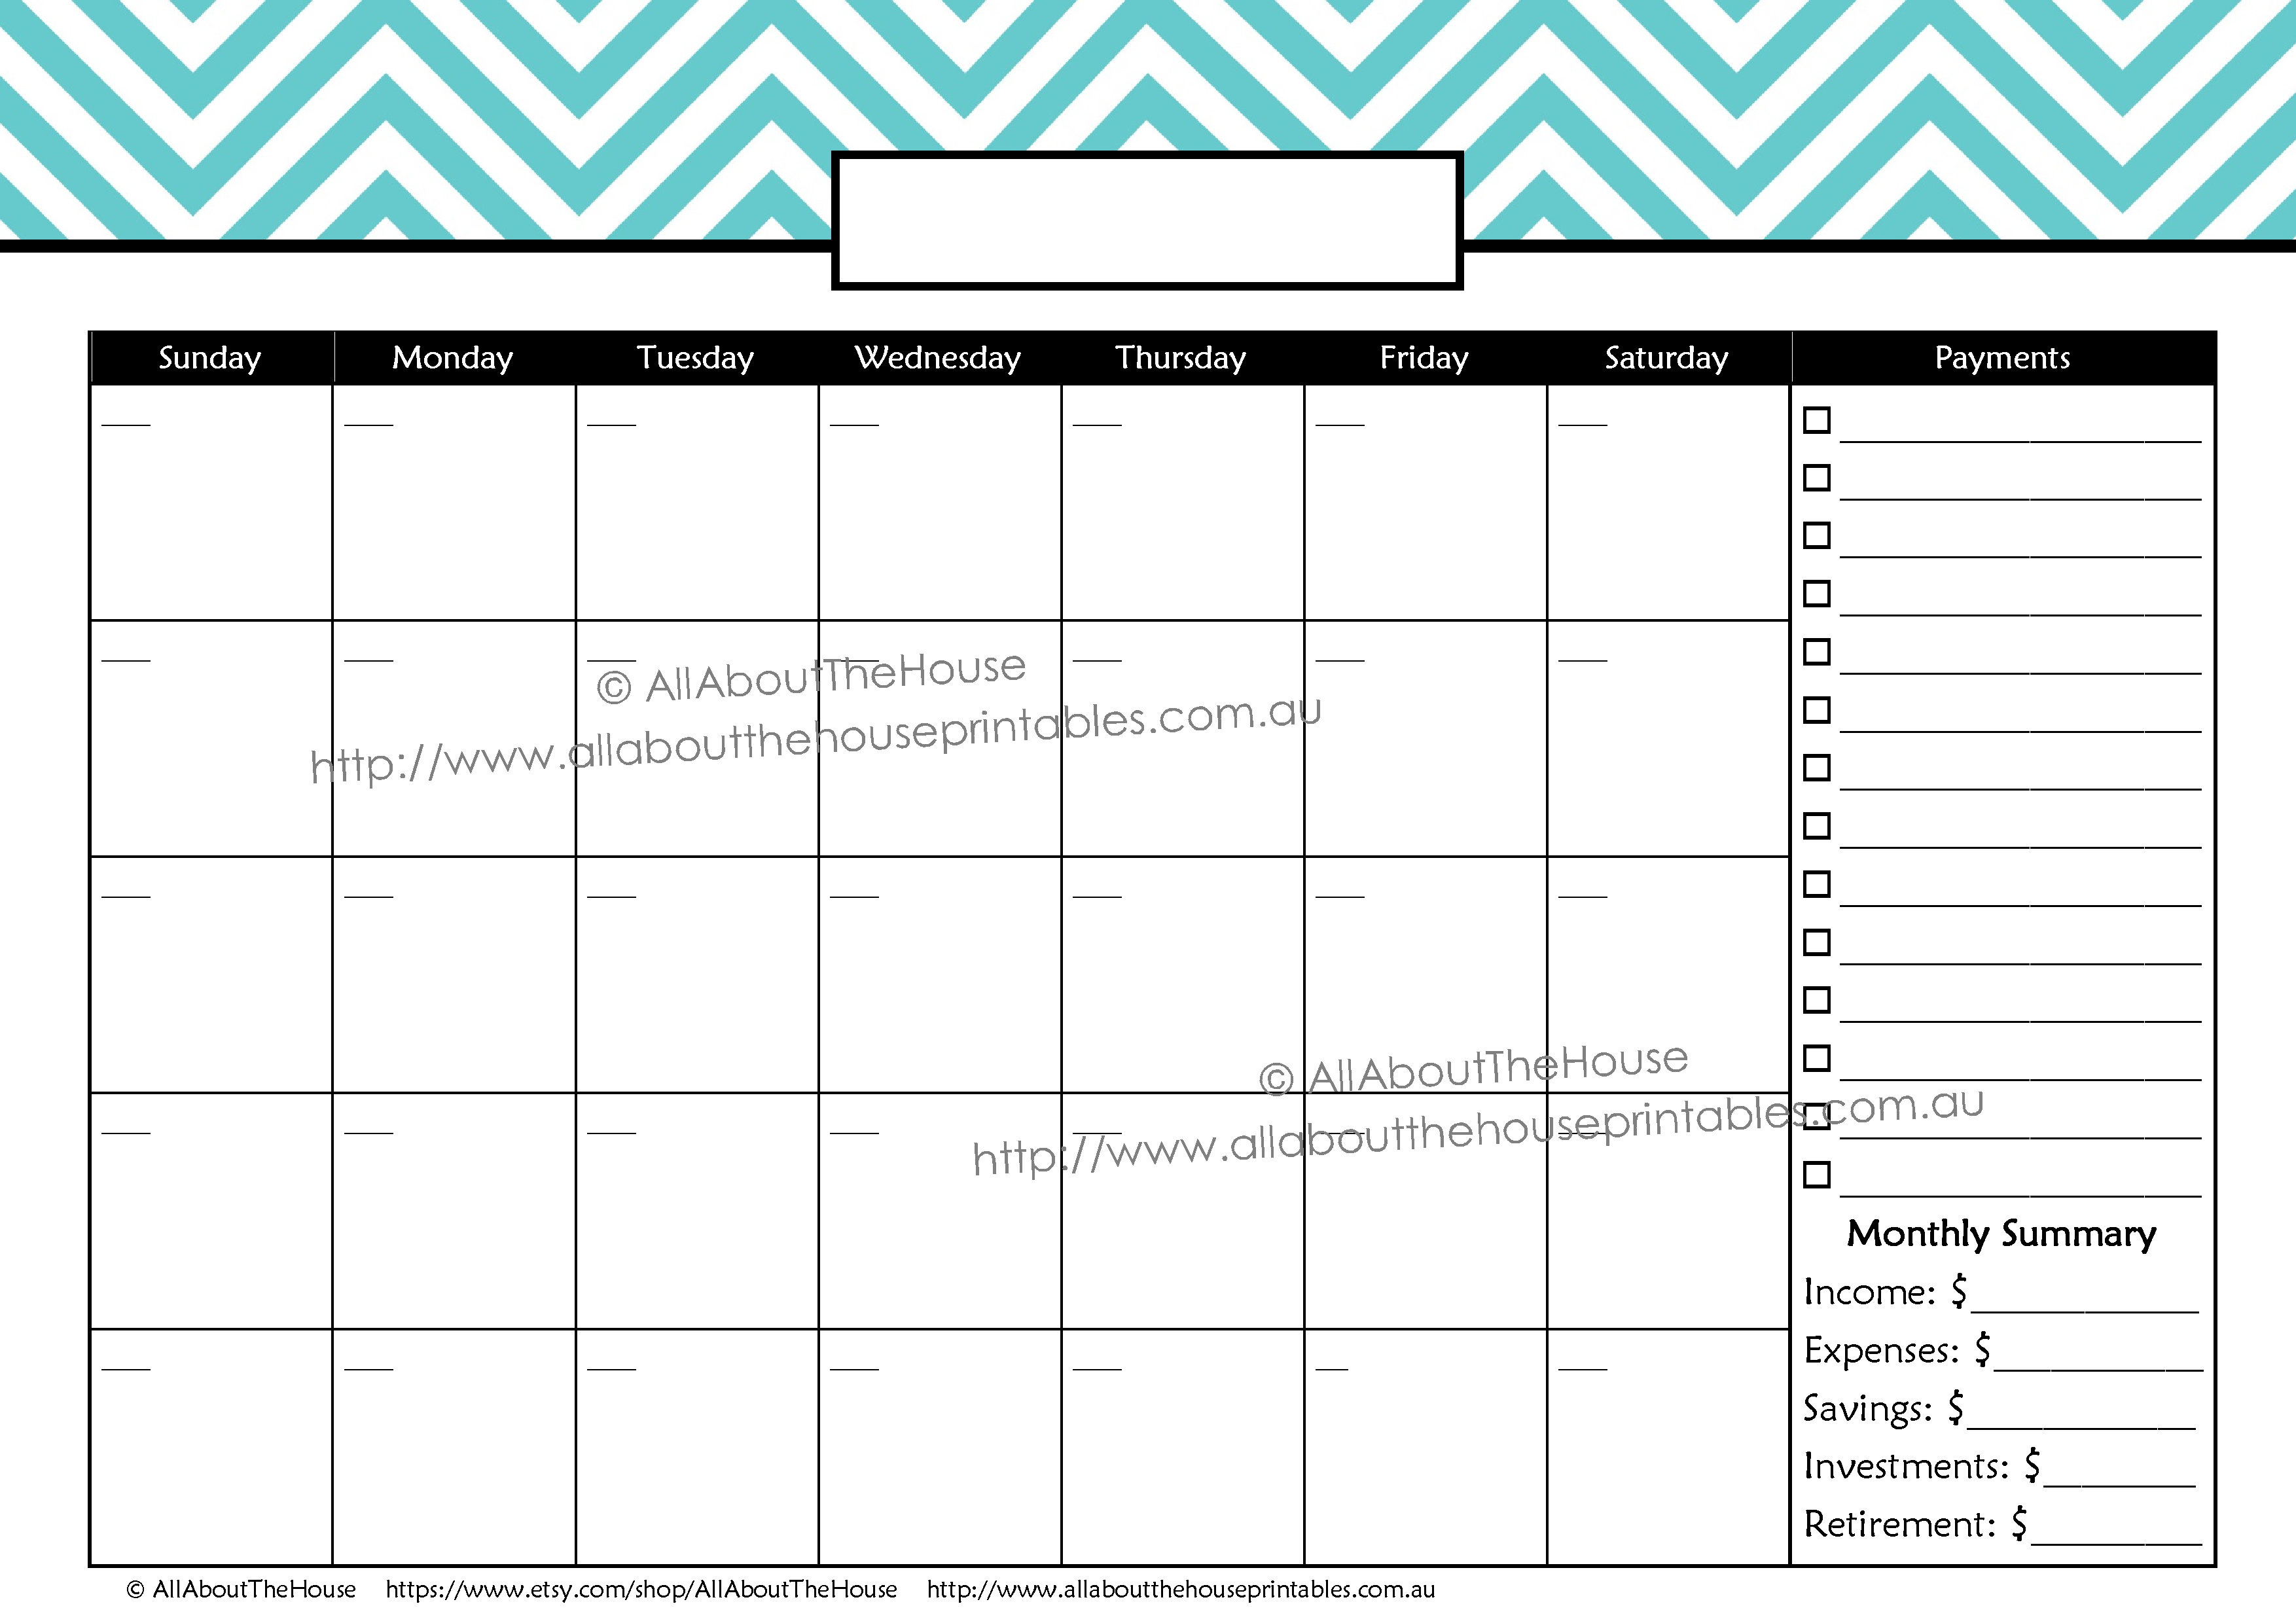 Personalised Printable | Allaboutthehouse Printables for Printable Perpetual Monthly Calendar